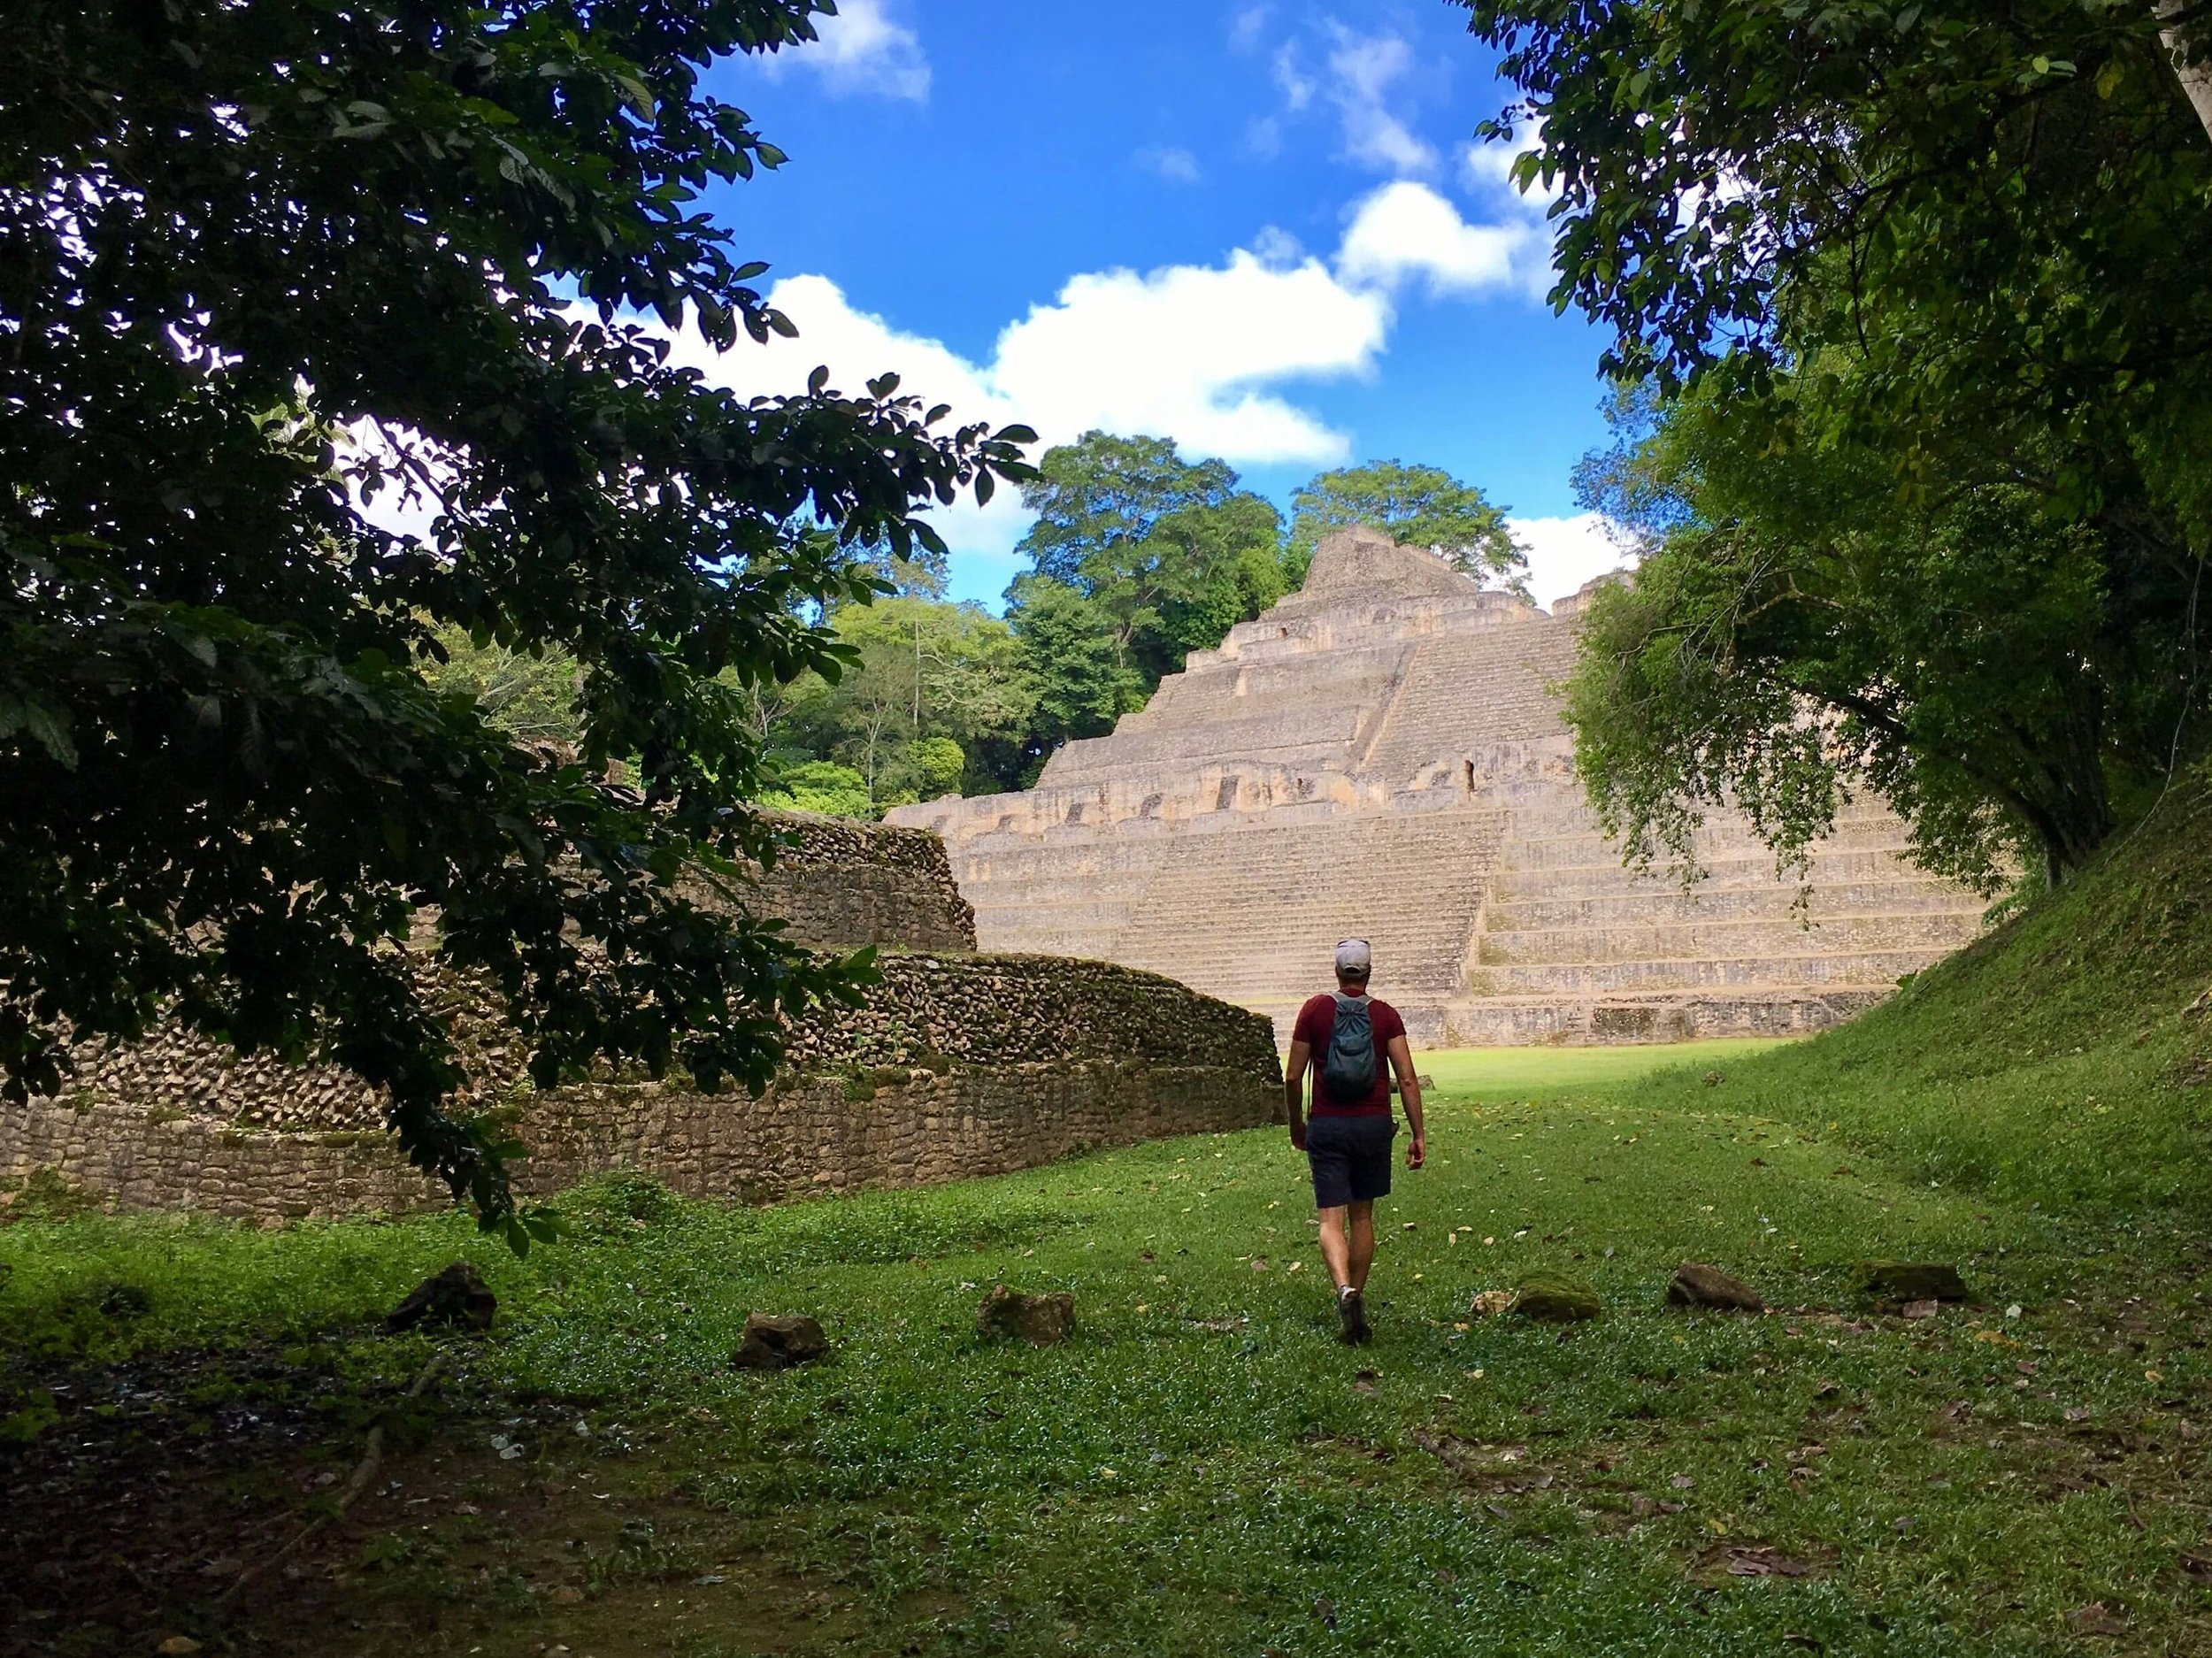 A real example of exploration within a Mayan Ruin. Caracol Mayan Ruin, Belize.